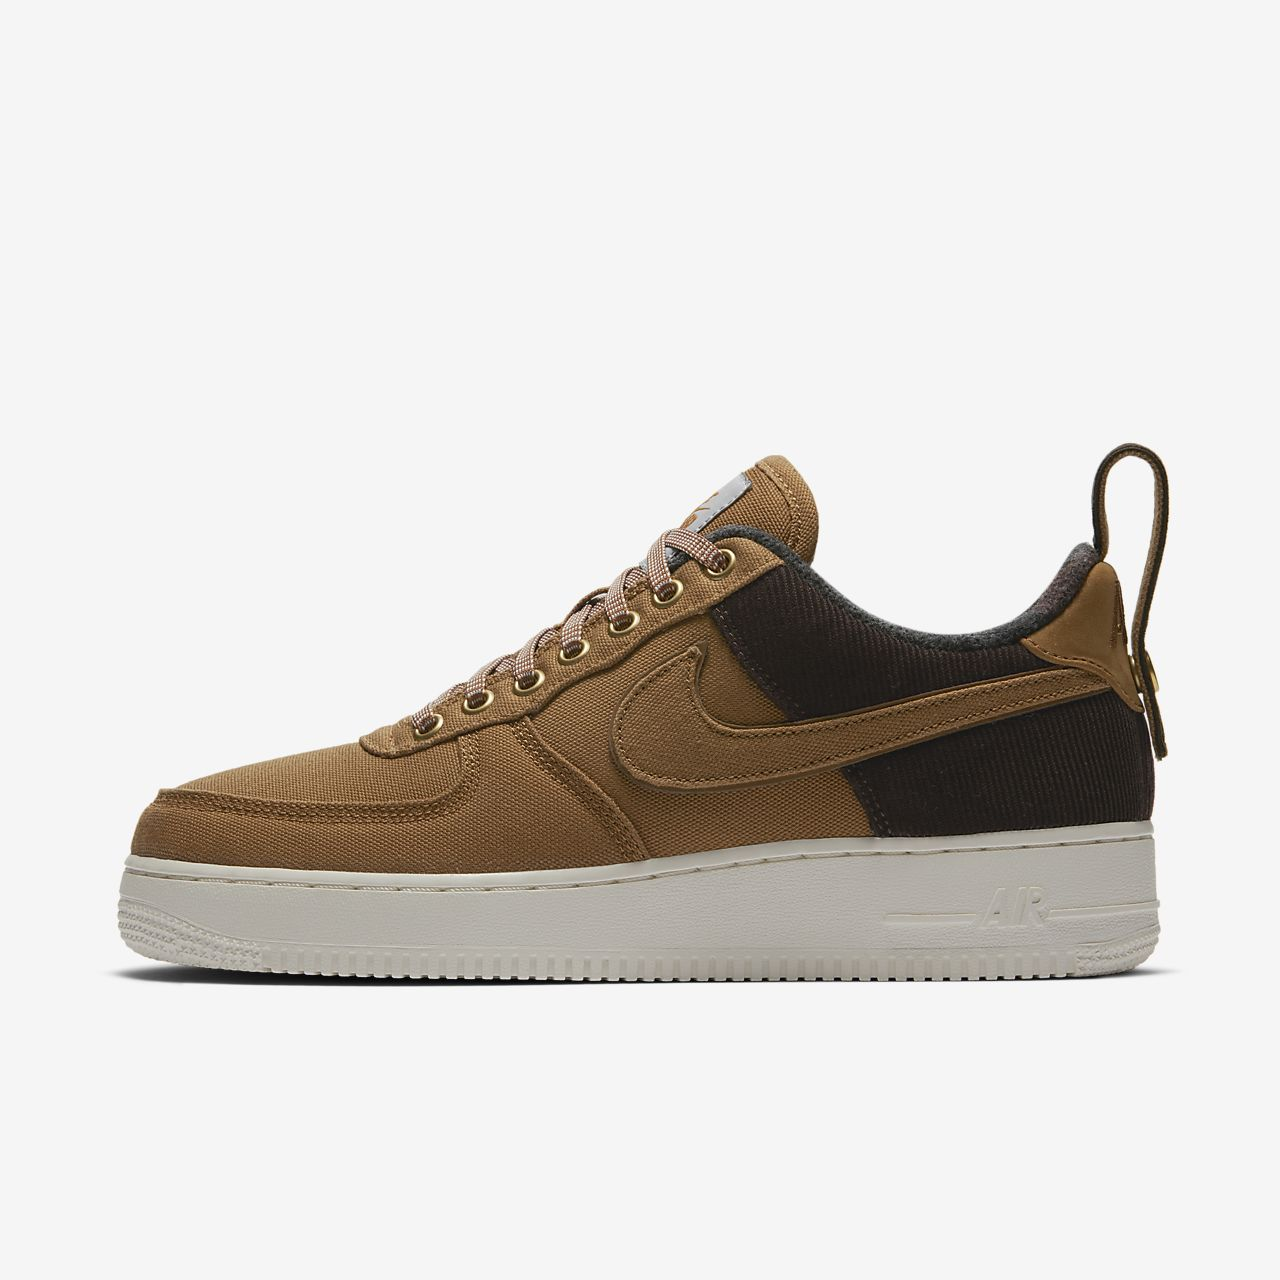 sports shoes e0f82 3587c ... Chaussure Nike x Carhartt WIP Air Force 1 pour Homme